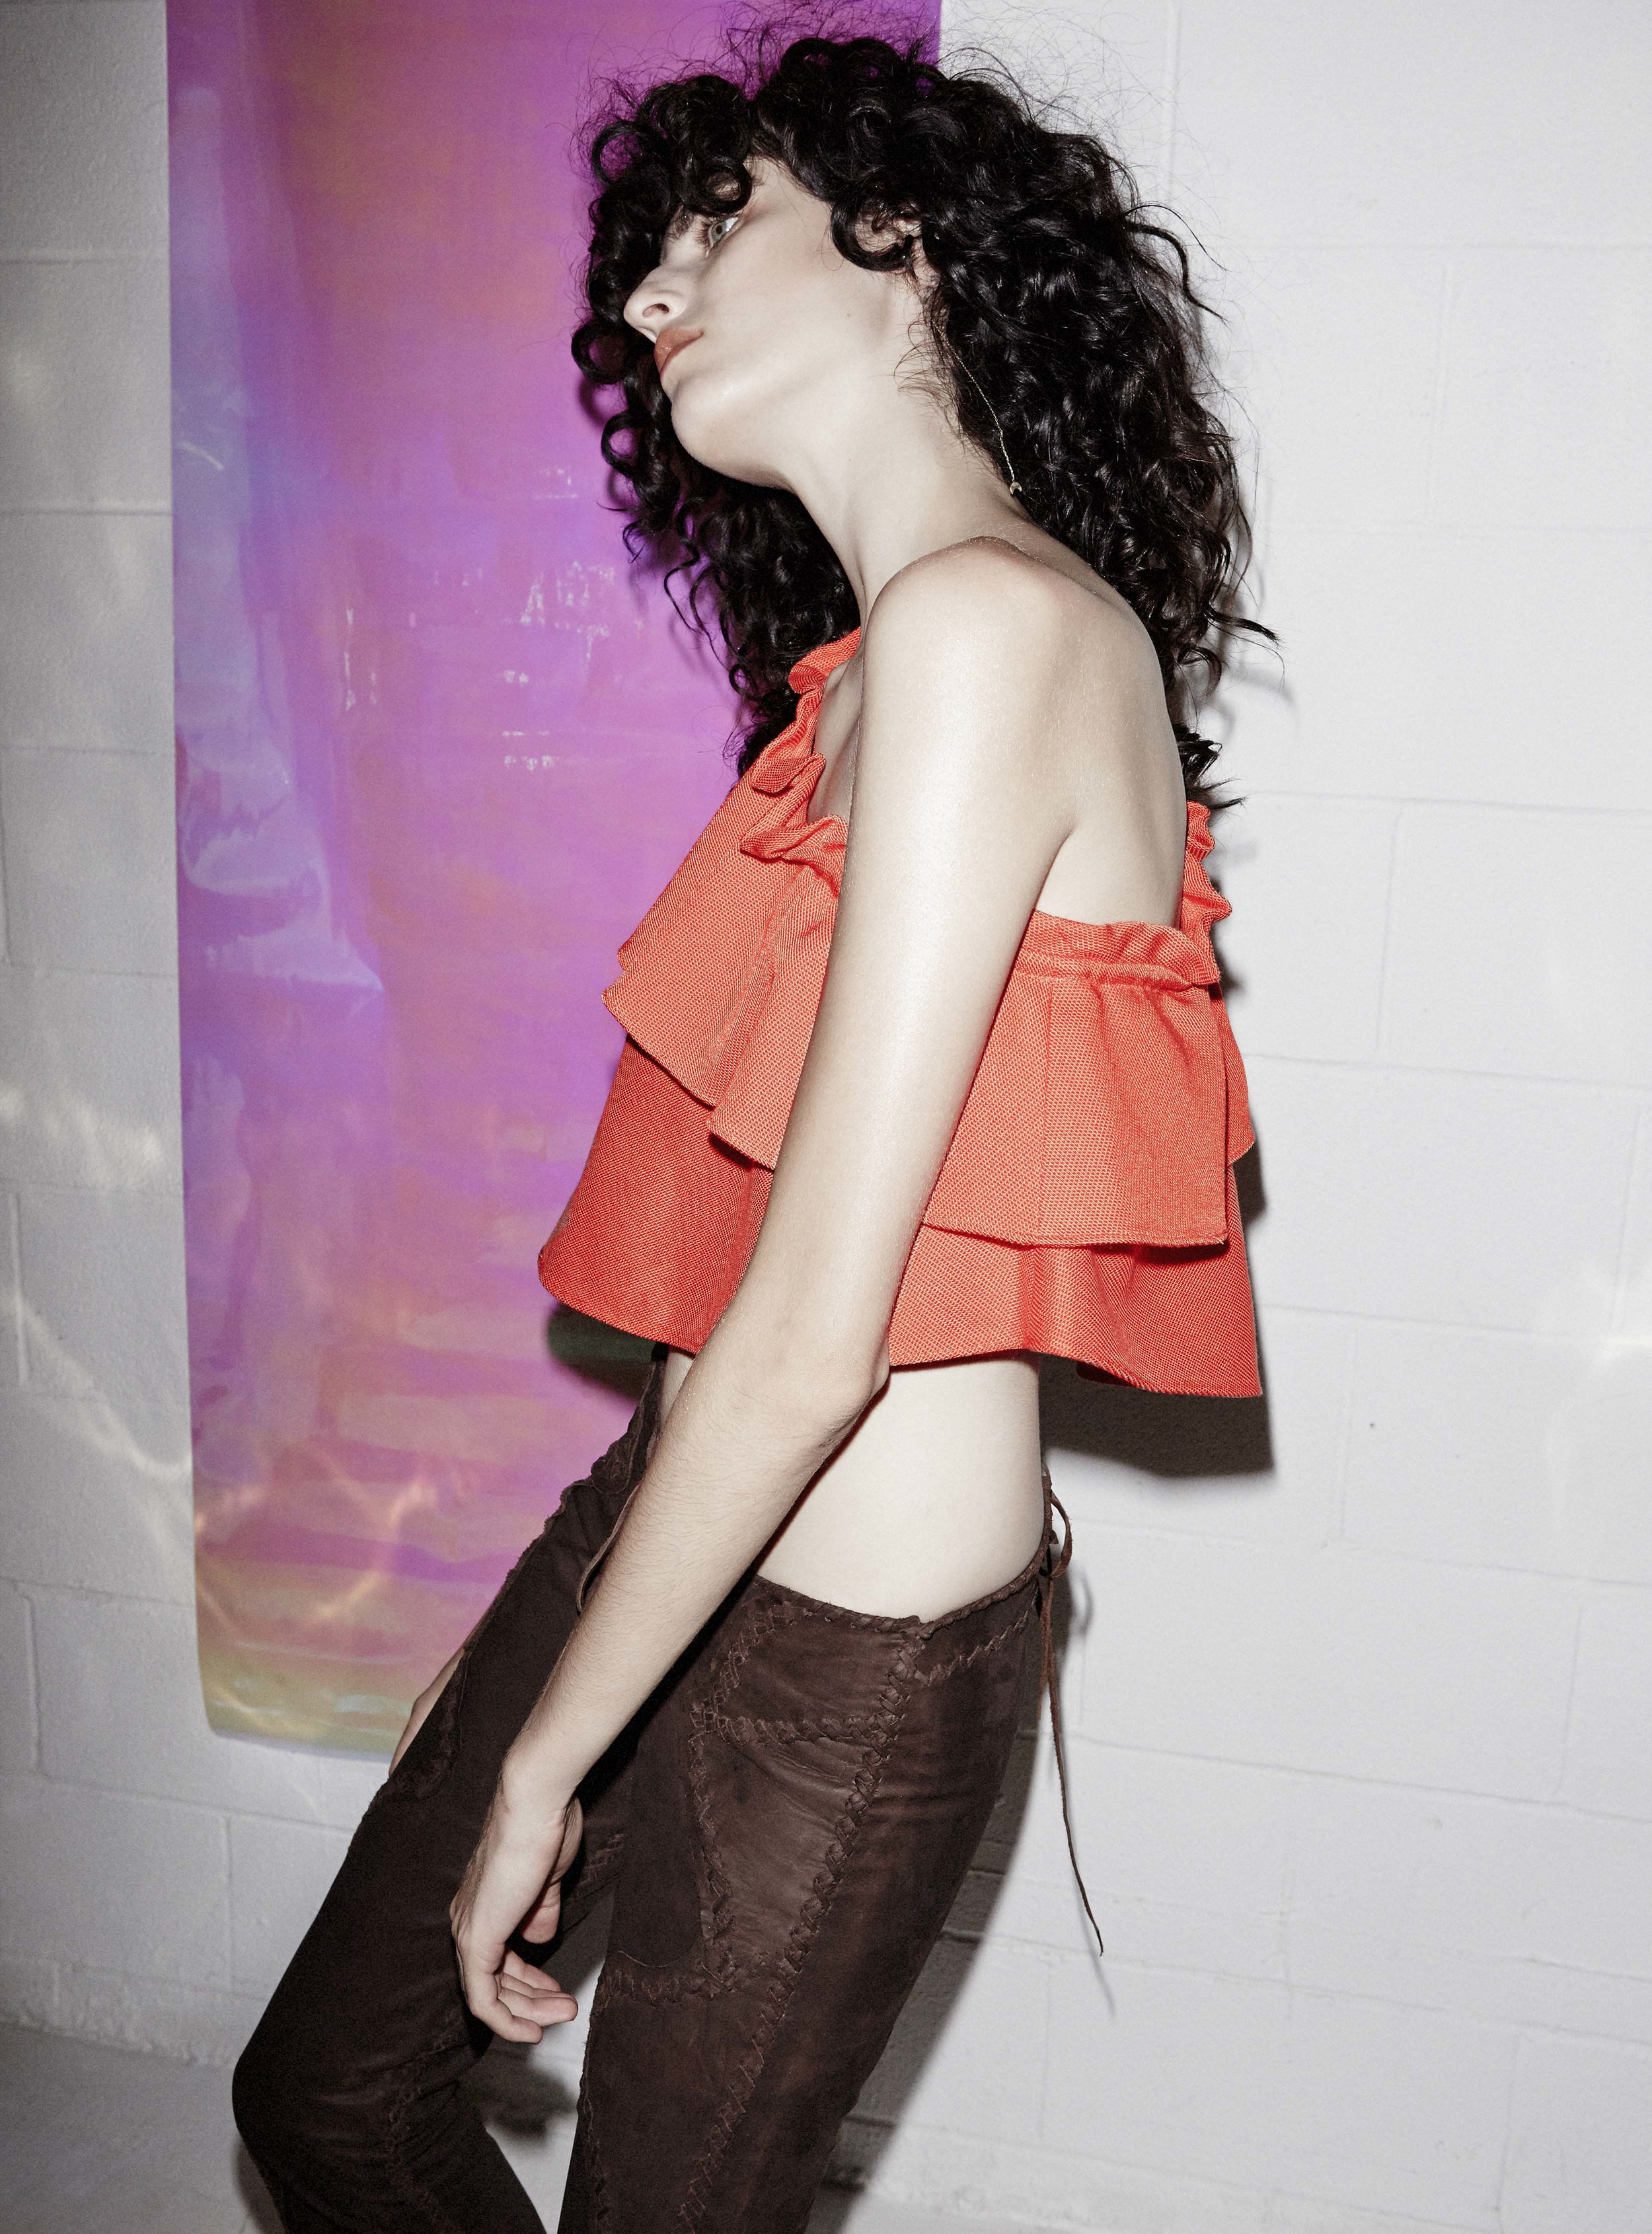 Ruffle Top by Apeice Apart, Leather Pants by Lost Art, Earring and Rings by Lorae Russo